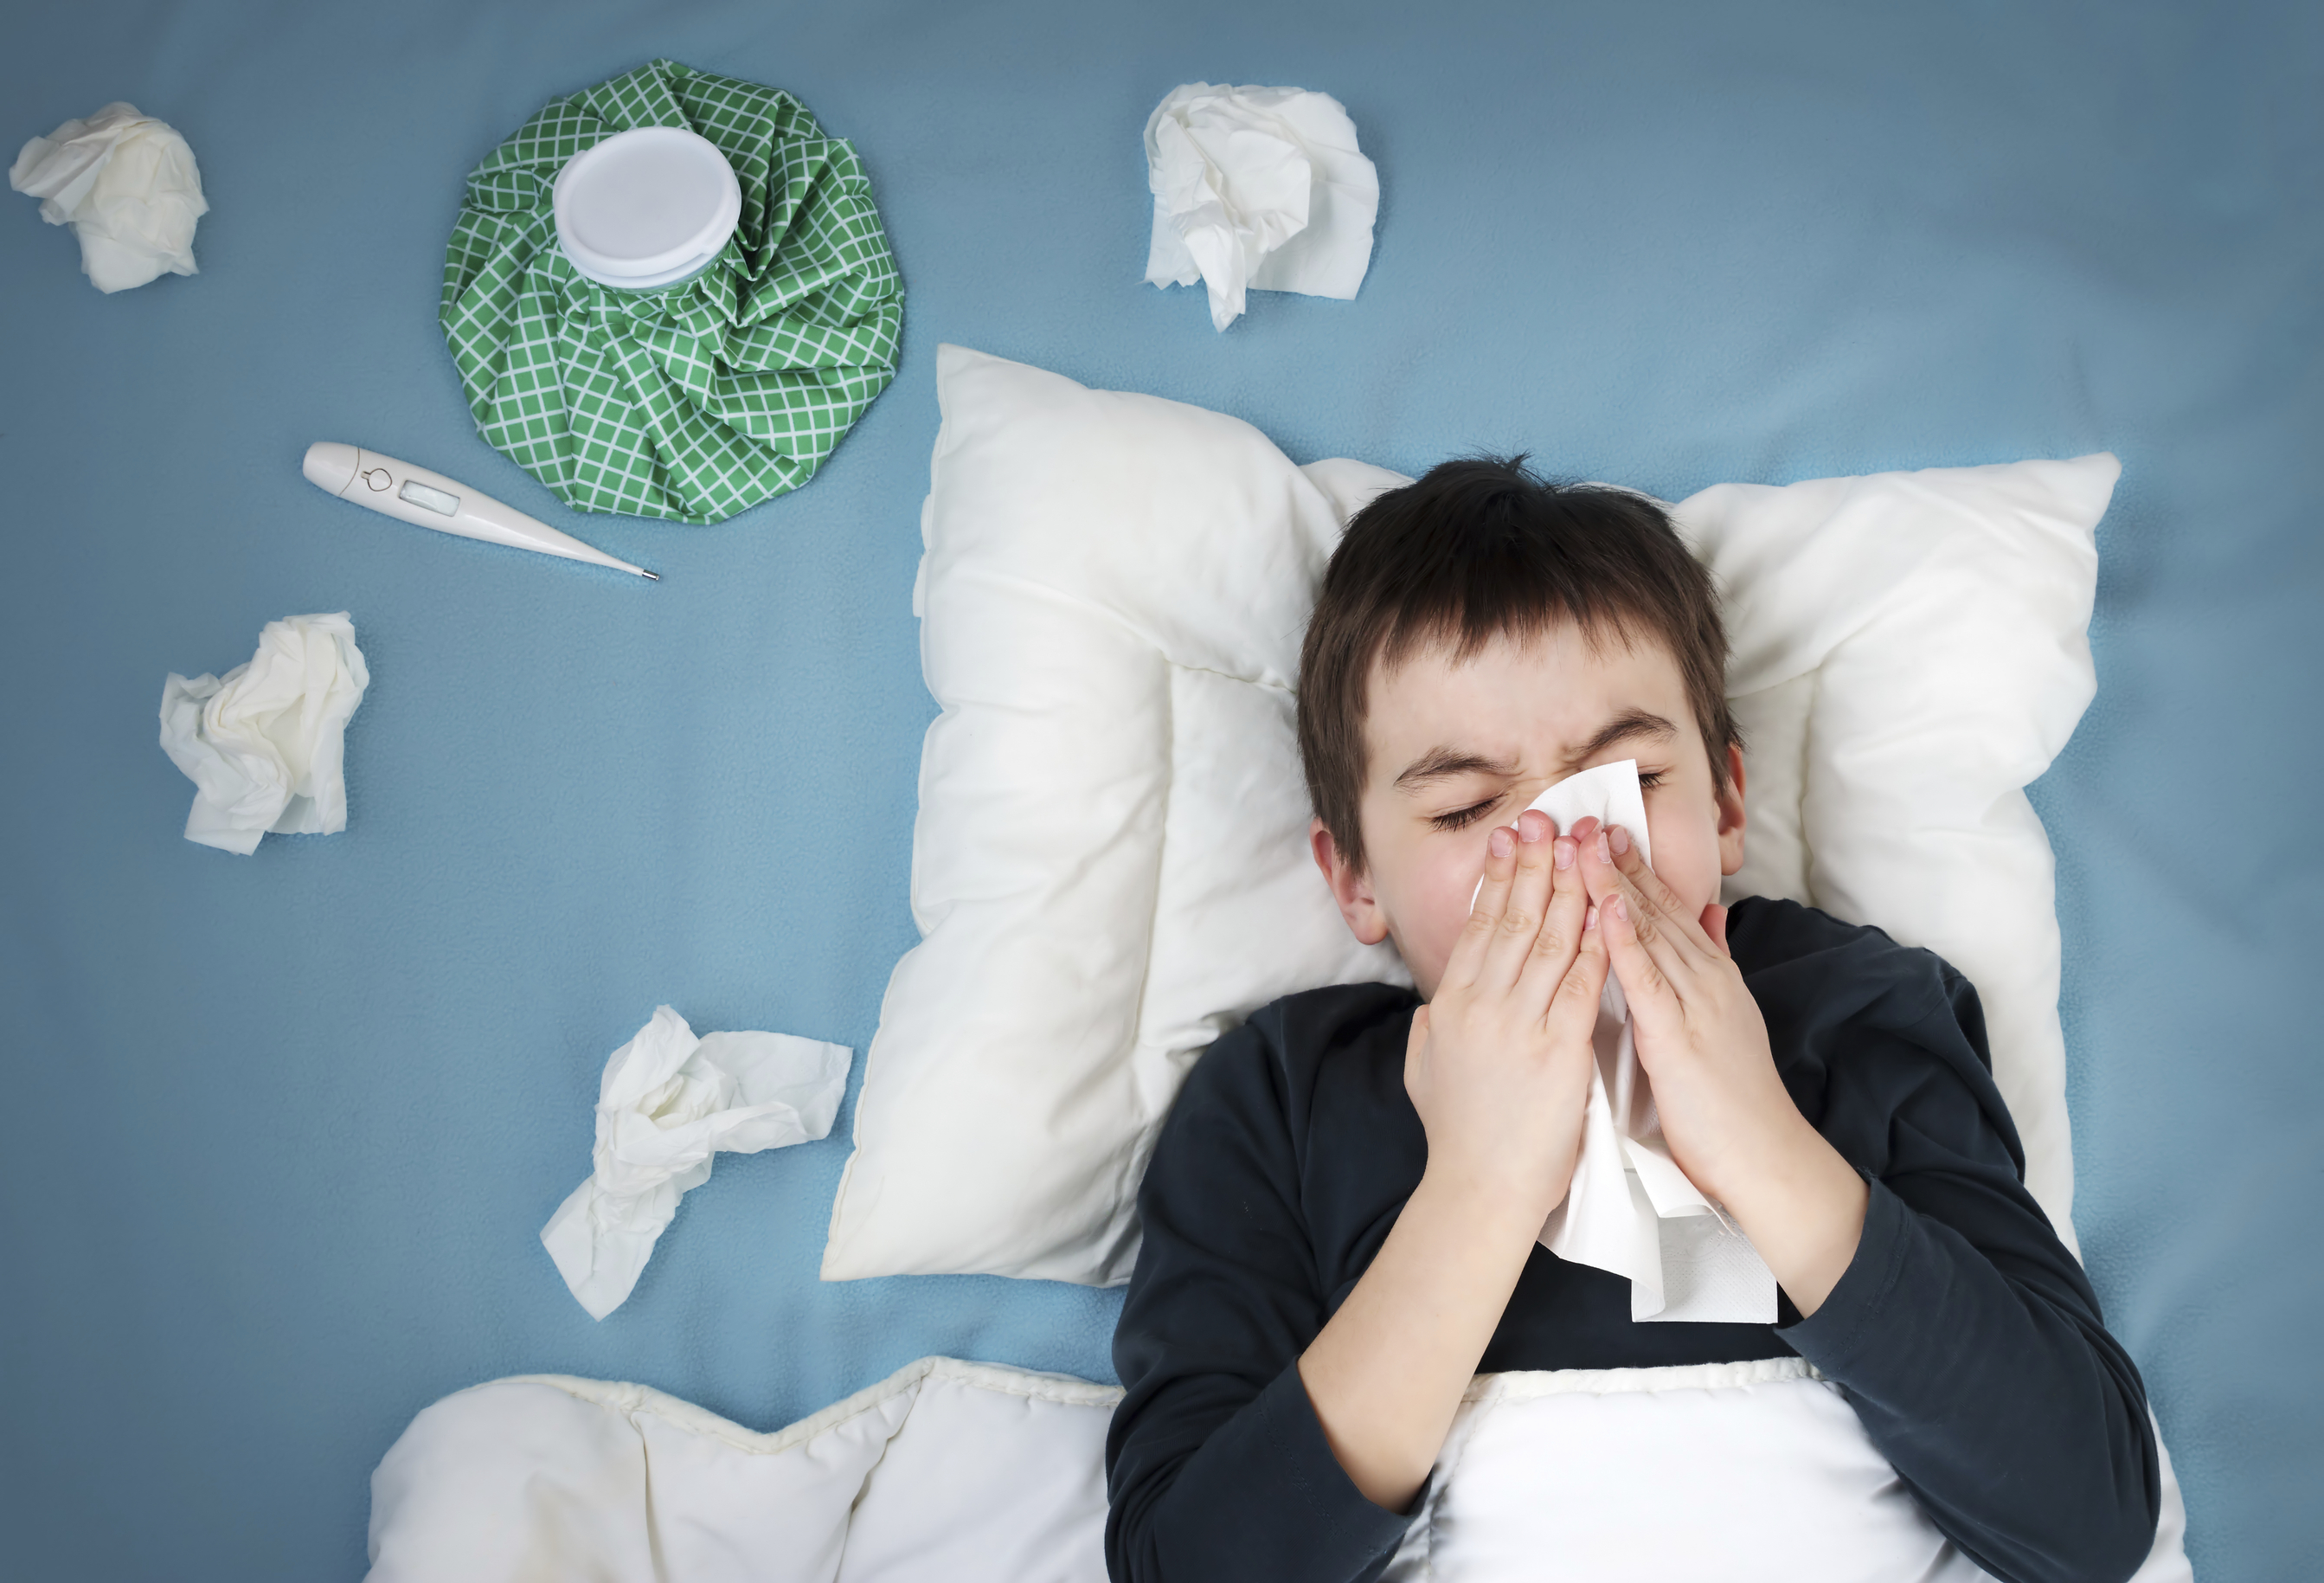 The nuisance also known as the common cold and how to avoid it ill boy lying in bed altavistaventures Images